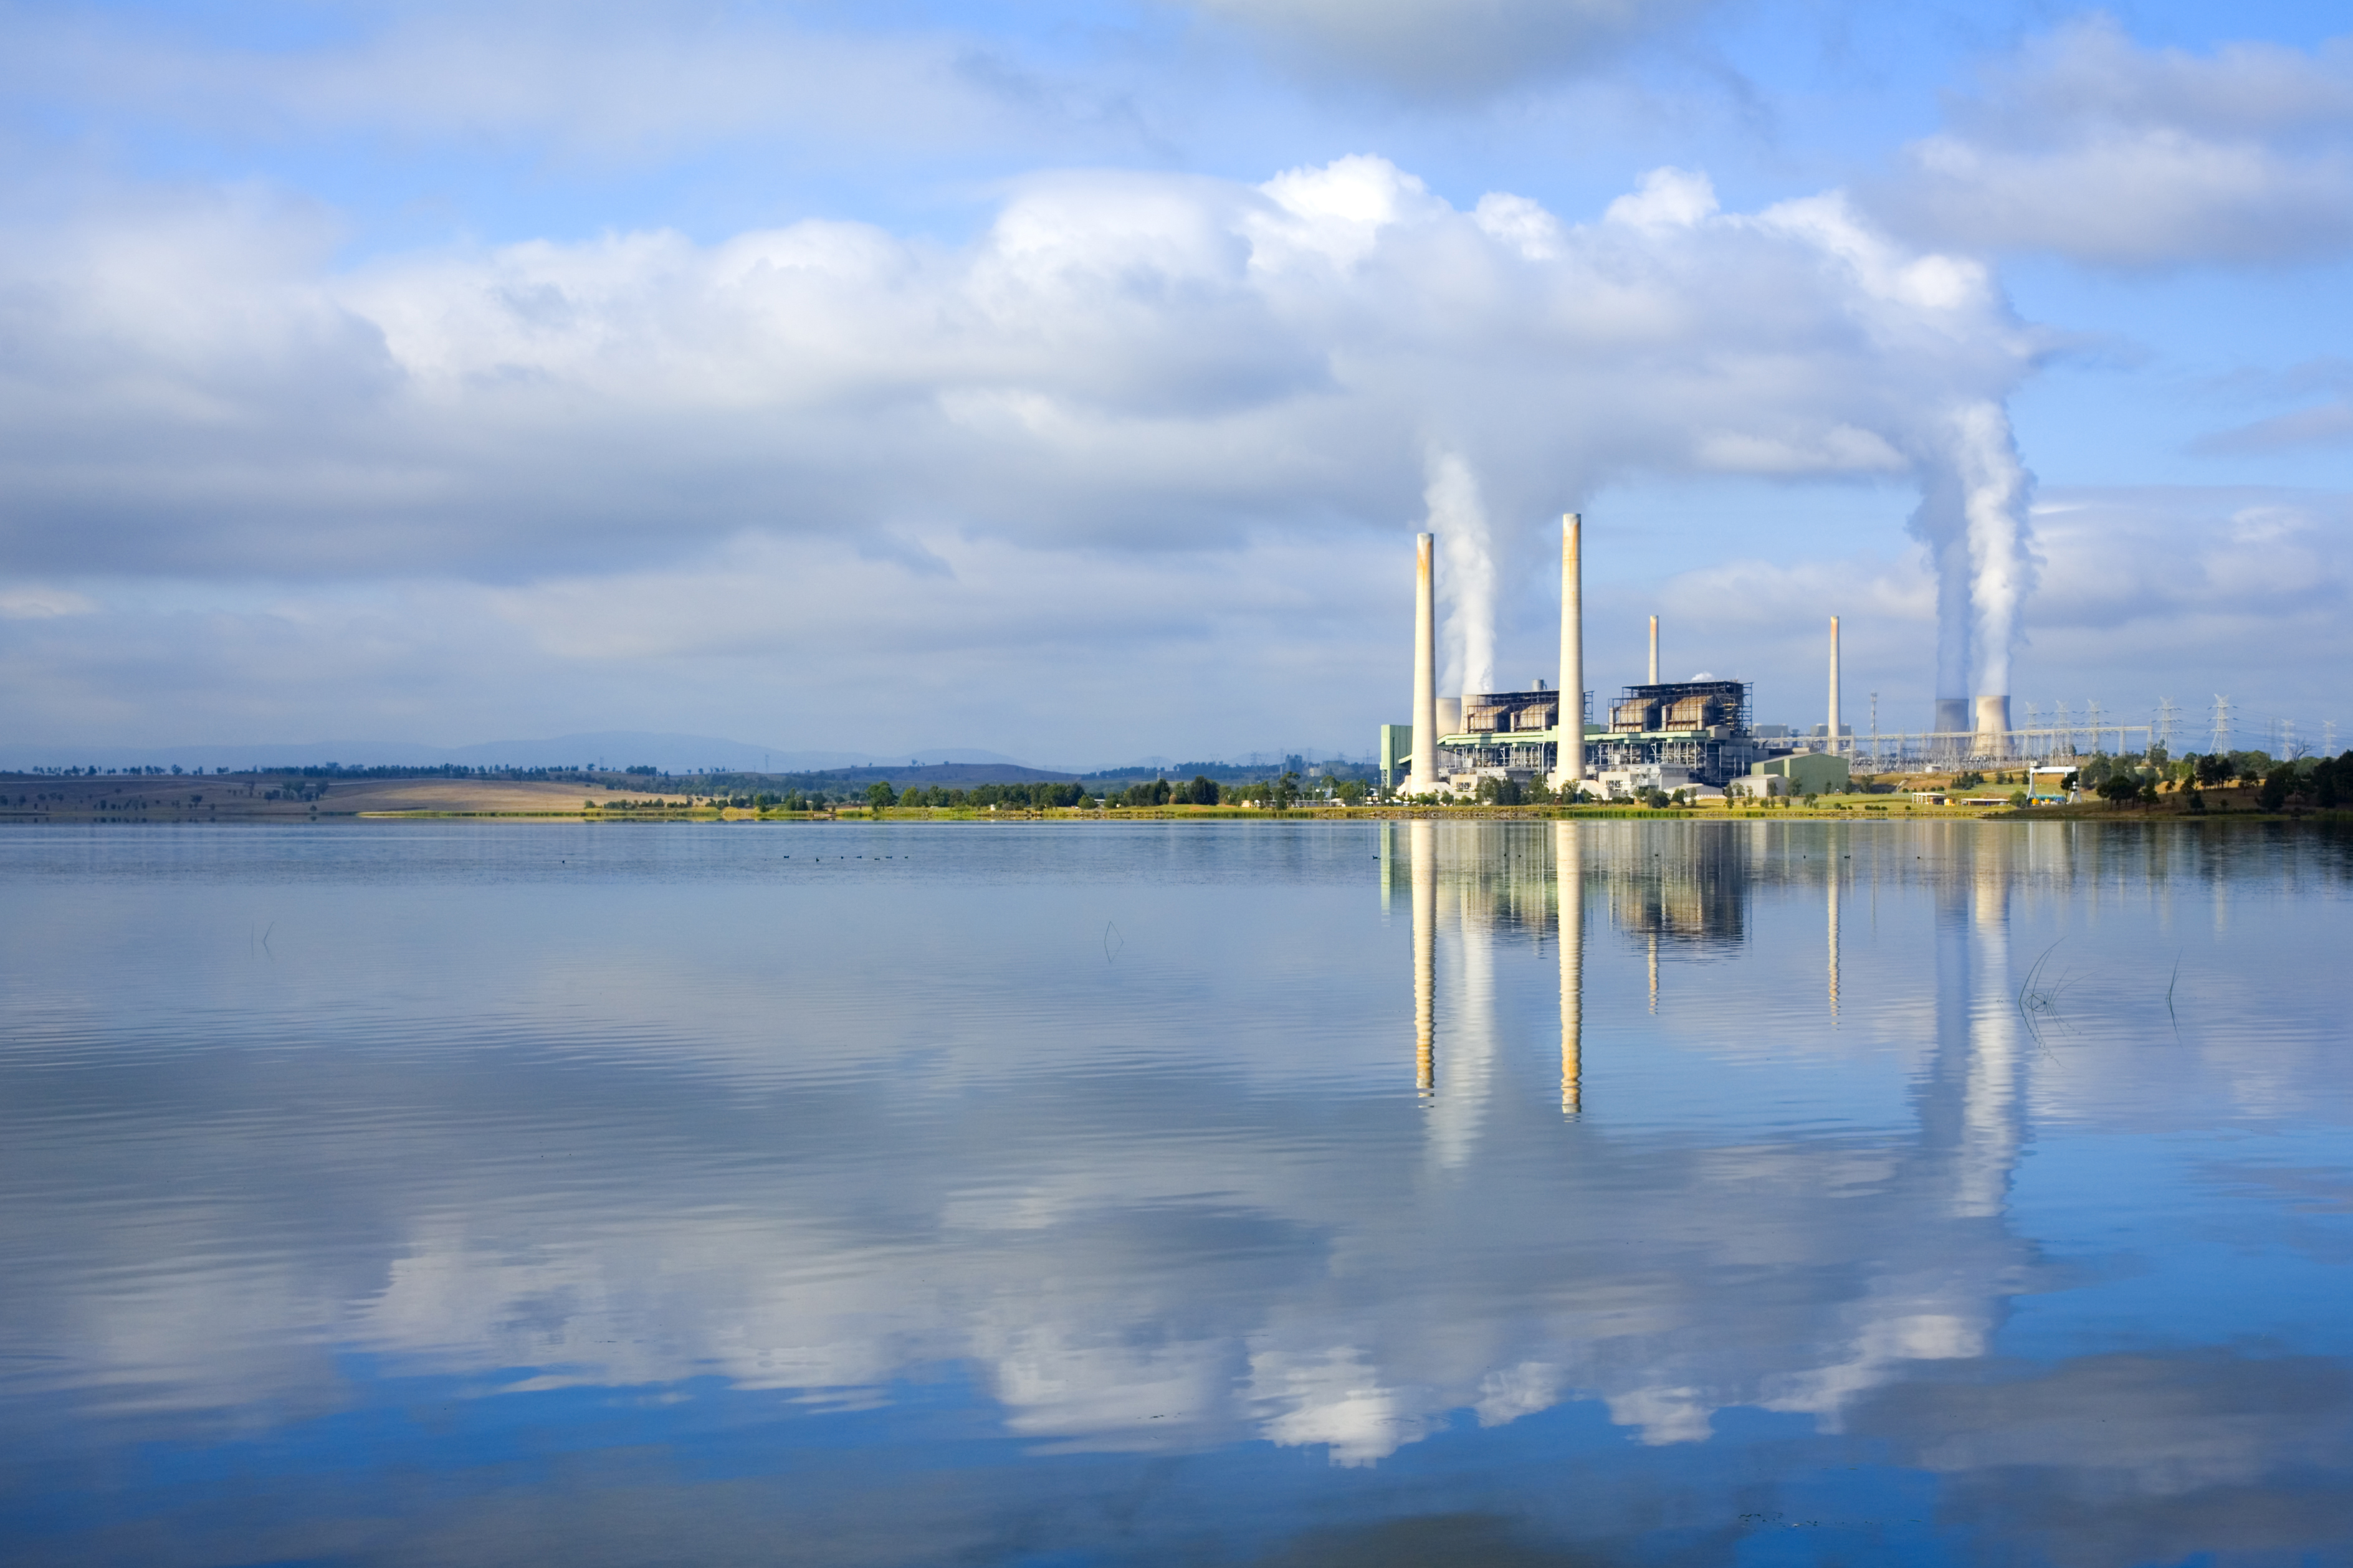 Power Station Coal Fired Australia Reflected in Lake